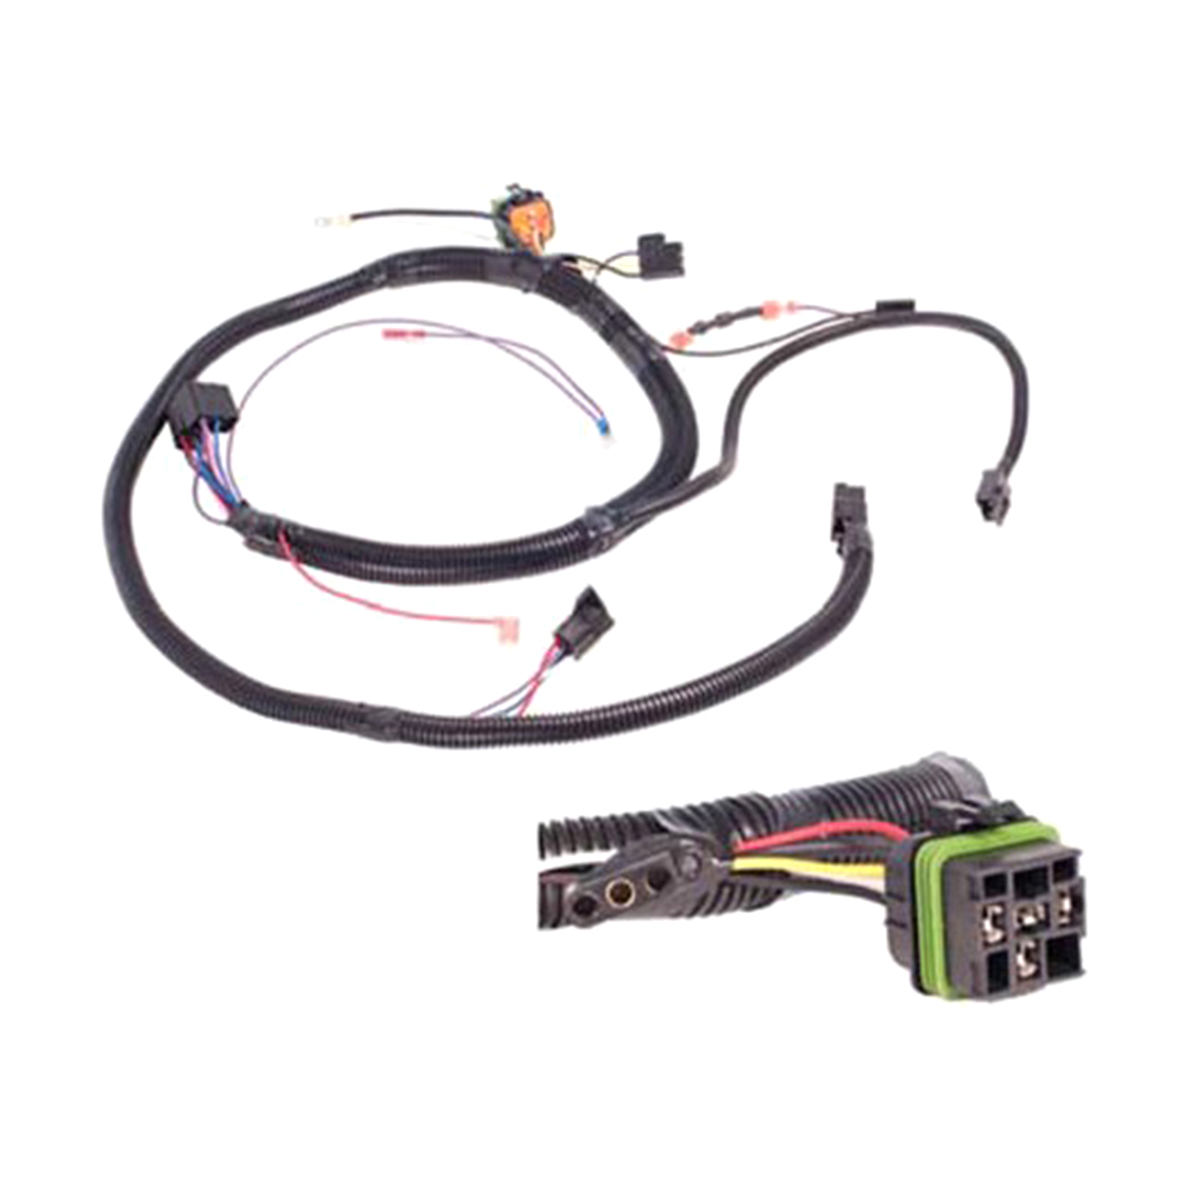 Dixie Chopper Generac 33hp Wiring Harness